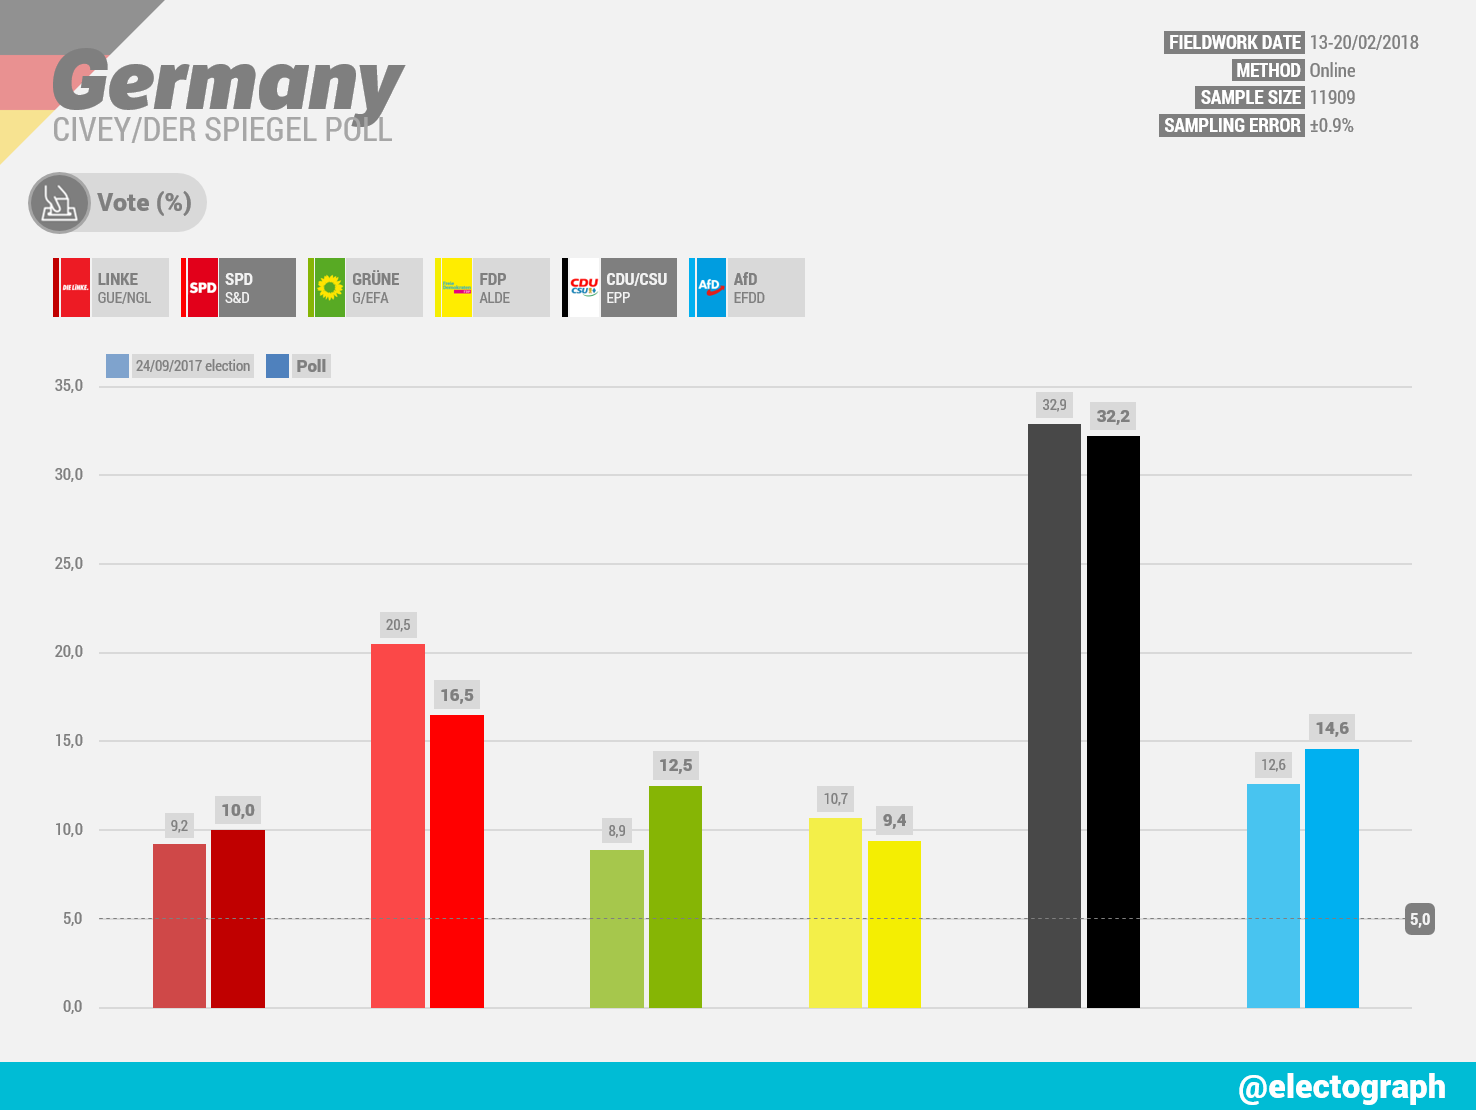 GERMANY Civey poll chart for Der Spiegel, February 2018